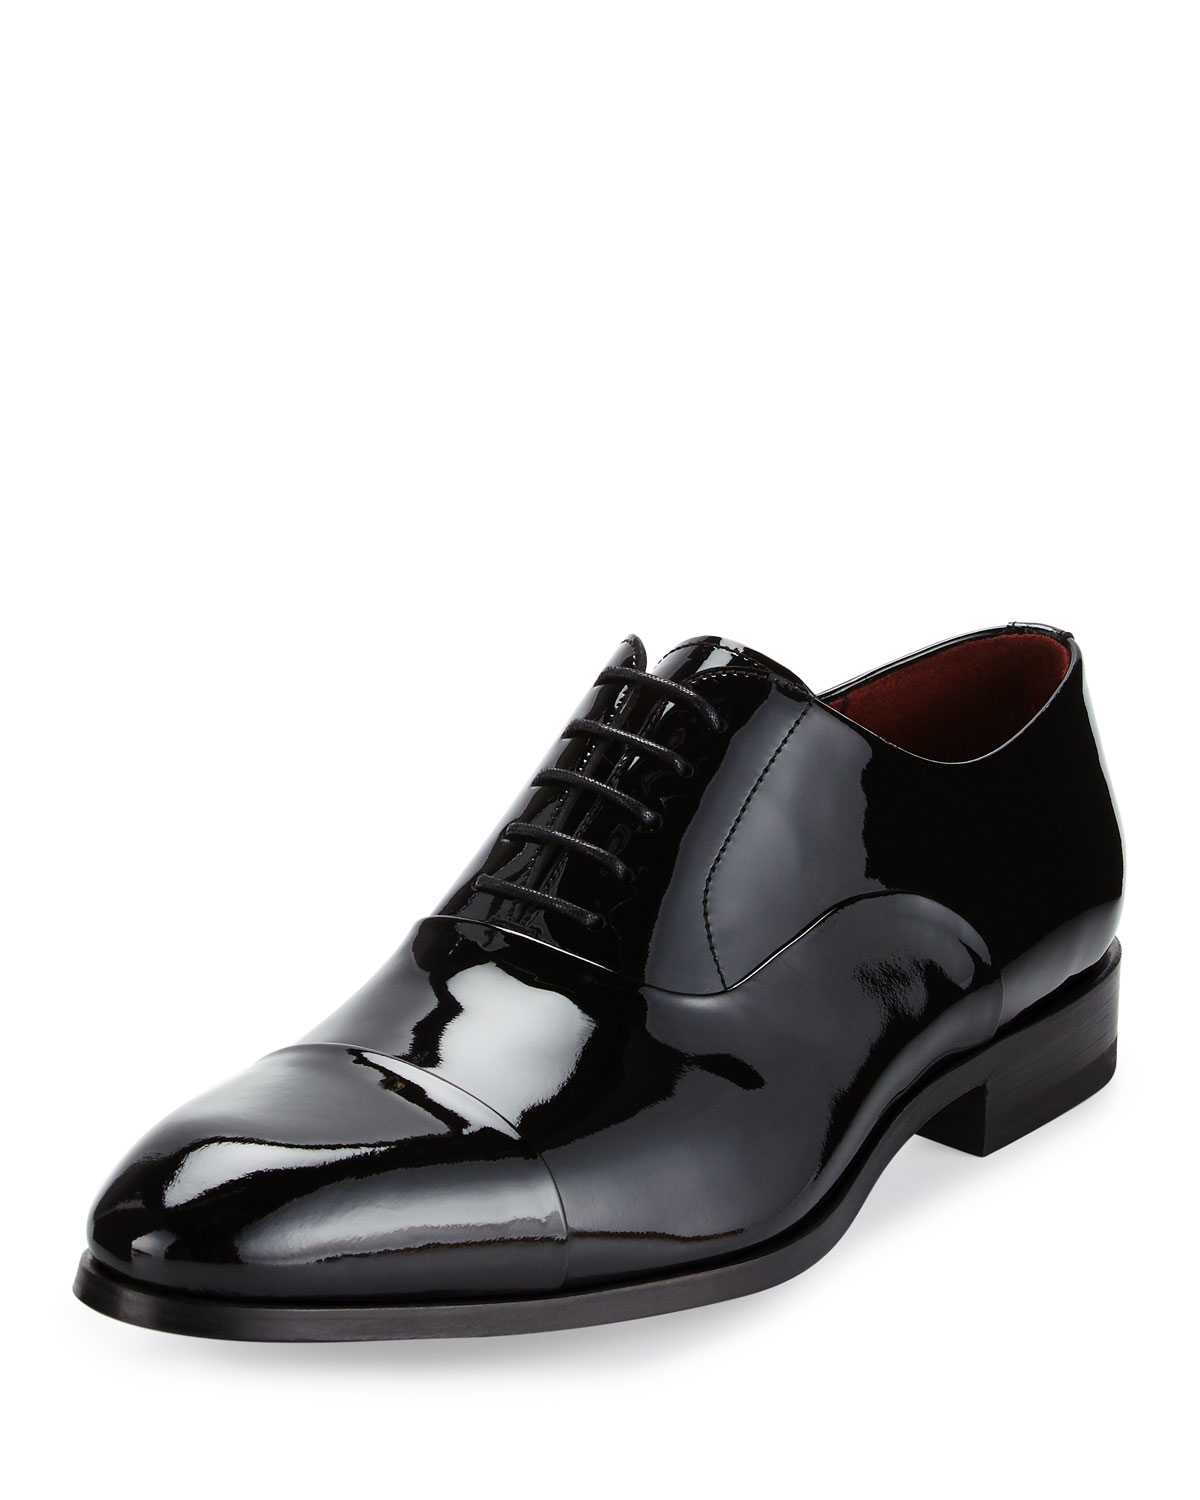 how to clean and polish patent leather shoes